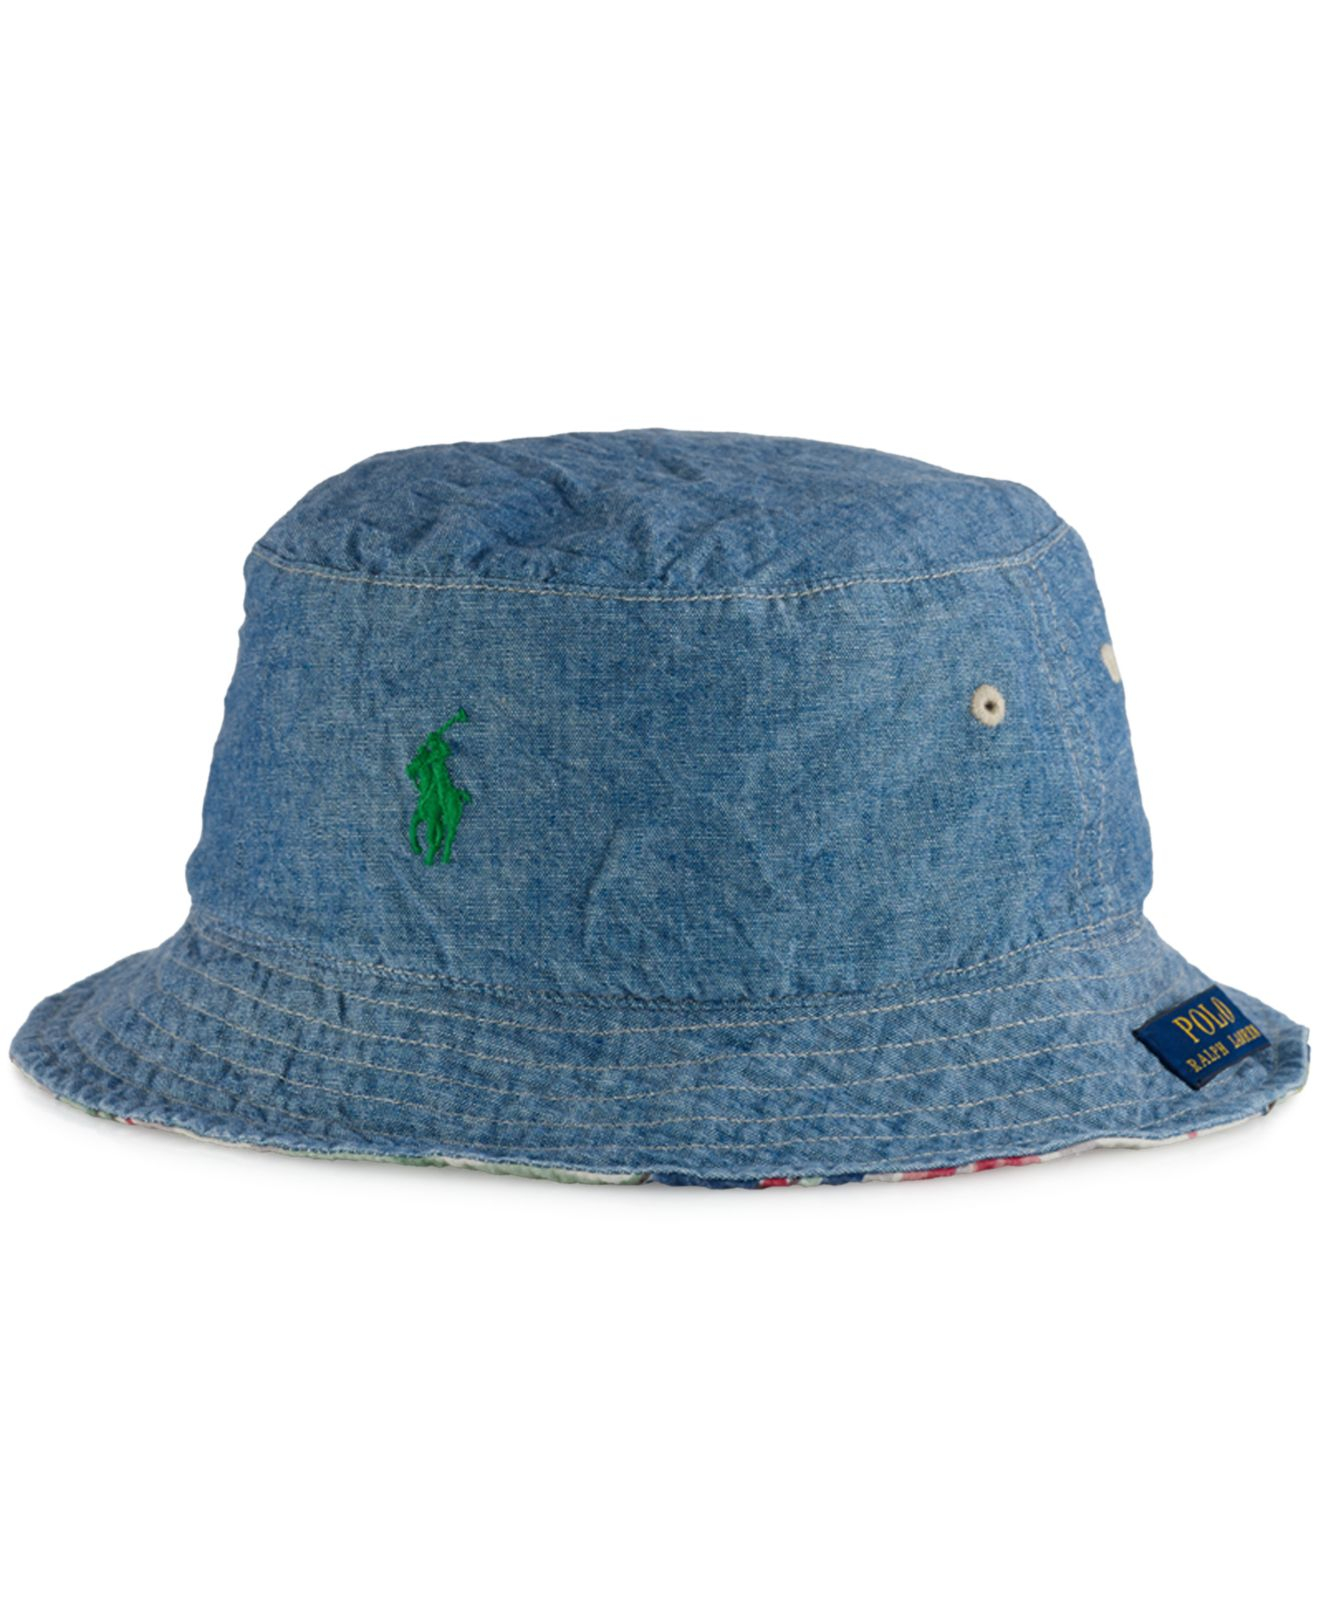 4284cf730a4 Lyst - Polo Ralph Lauren Big And Tall Reversible Tropical Bucket Hat ...